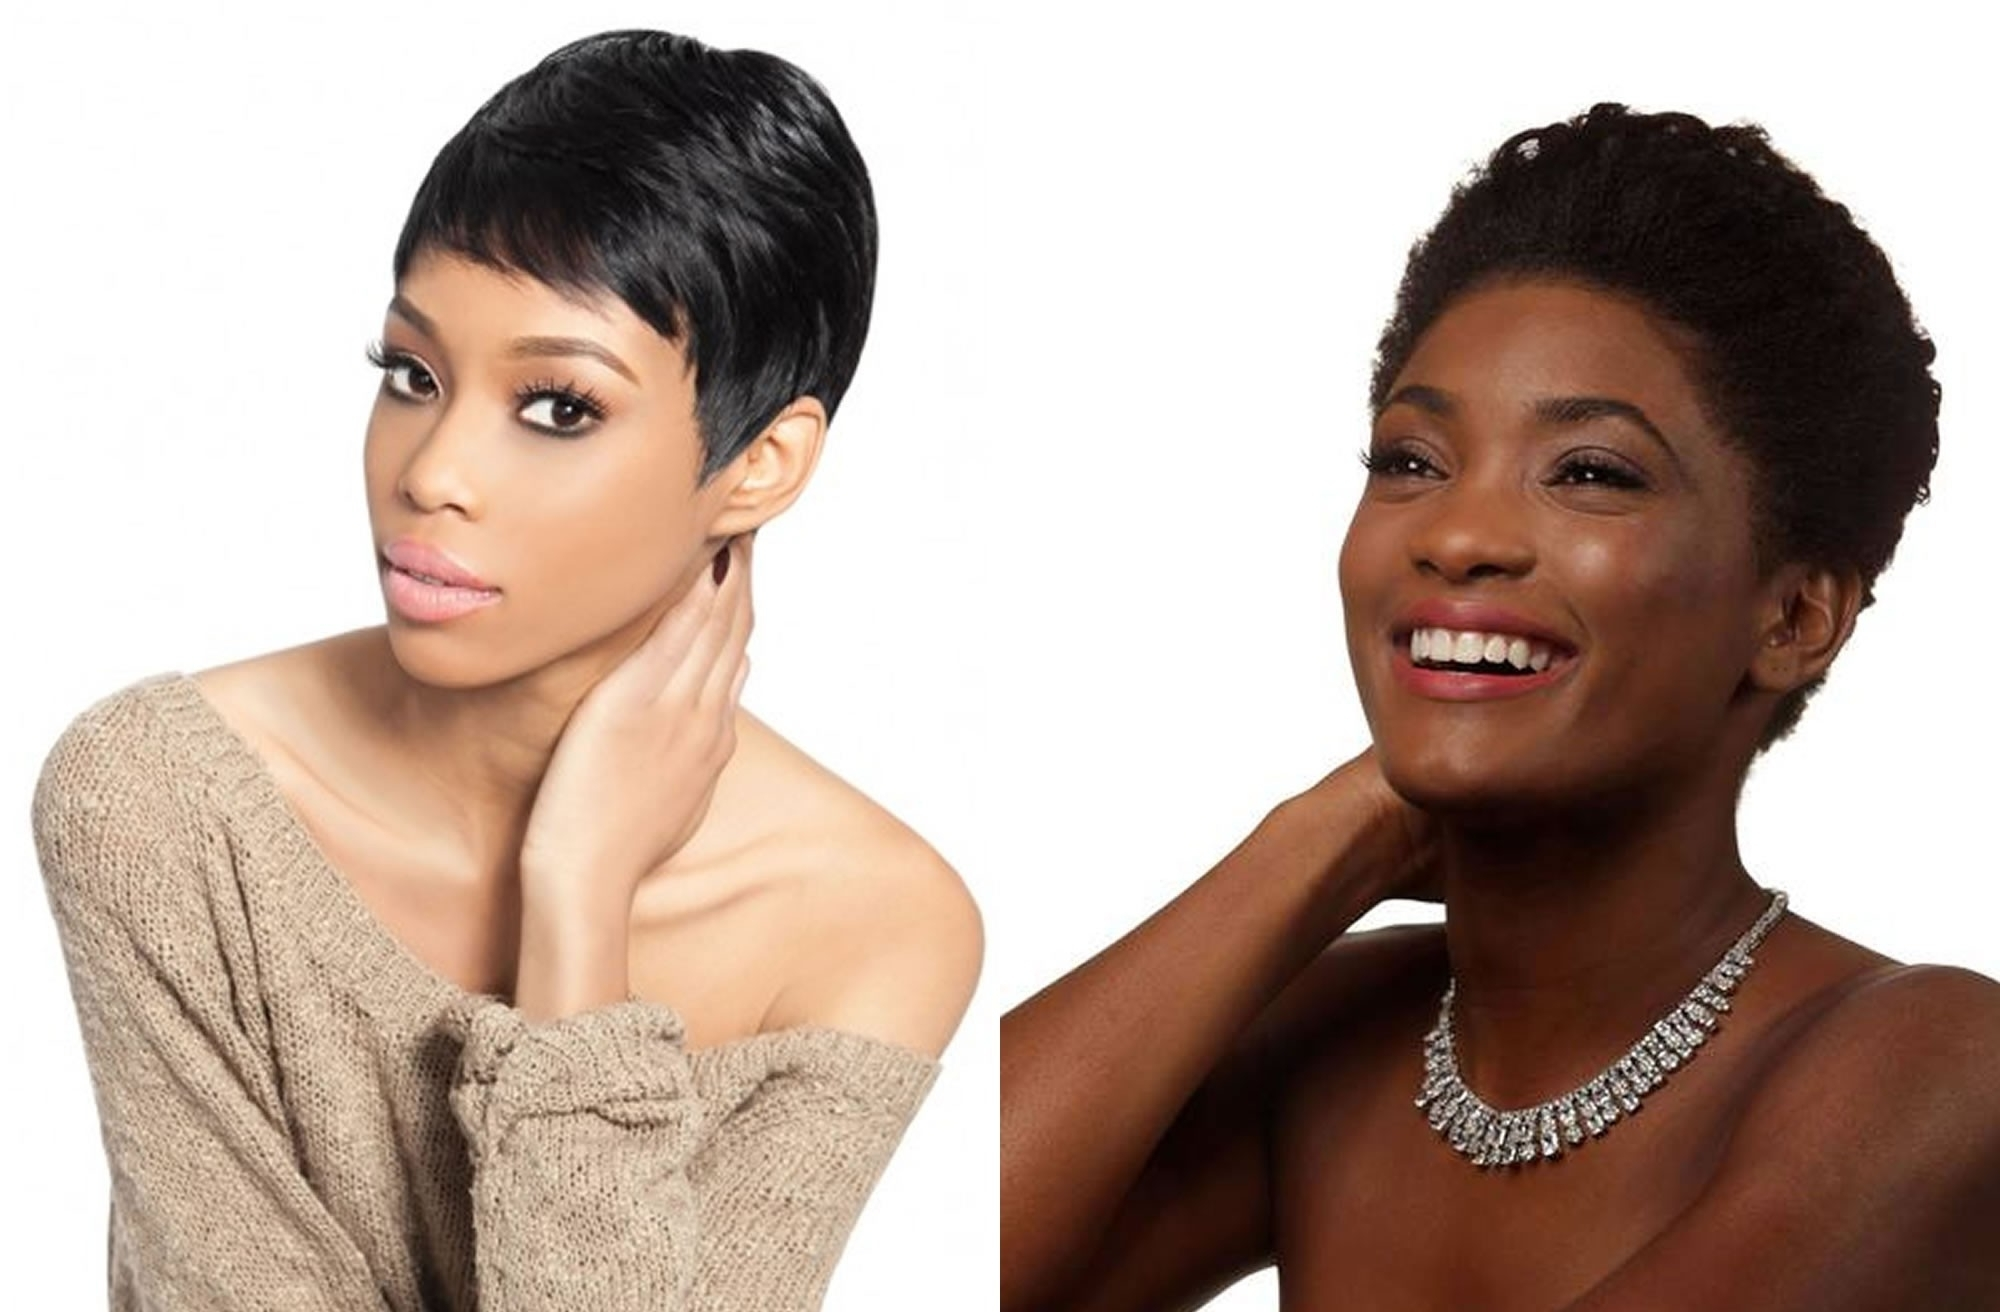 Finest Short Pixie Hairstyles For Black Women | Omdo Hairstyle Inside Most Recent Pixie Hairstyles For Black Women (View 15 of 15)